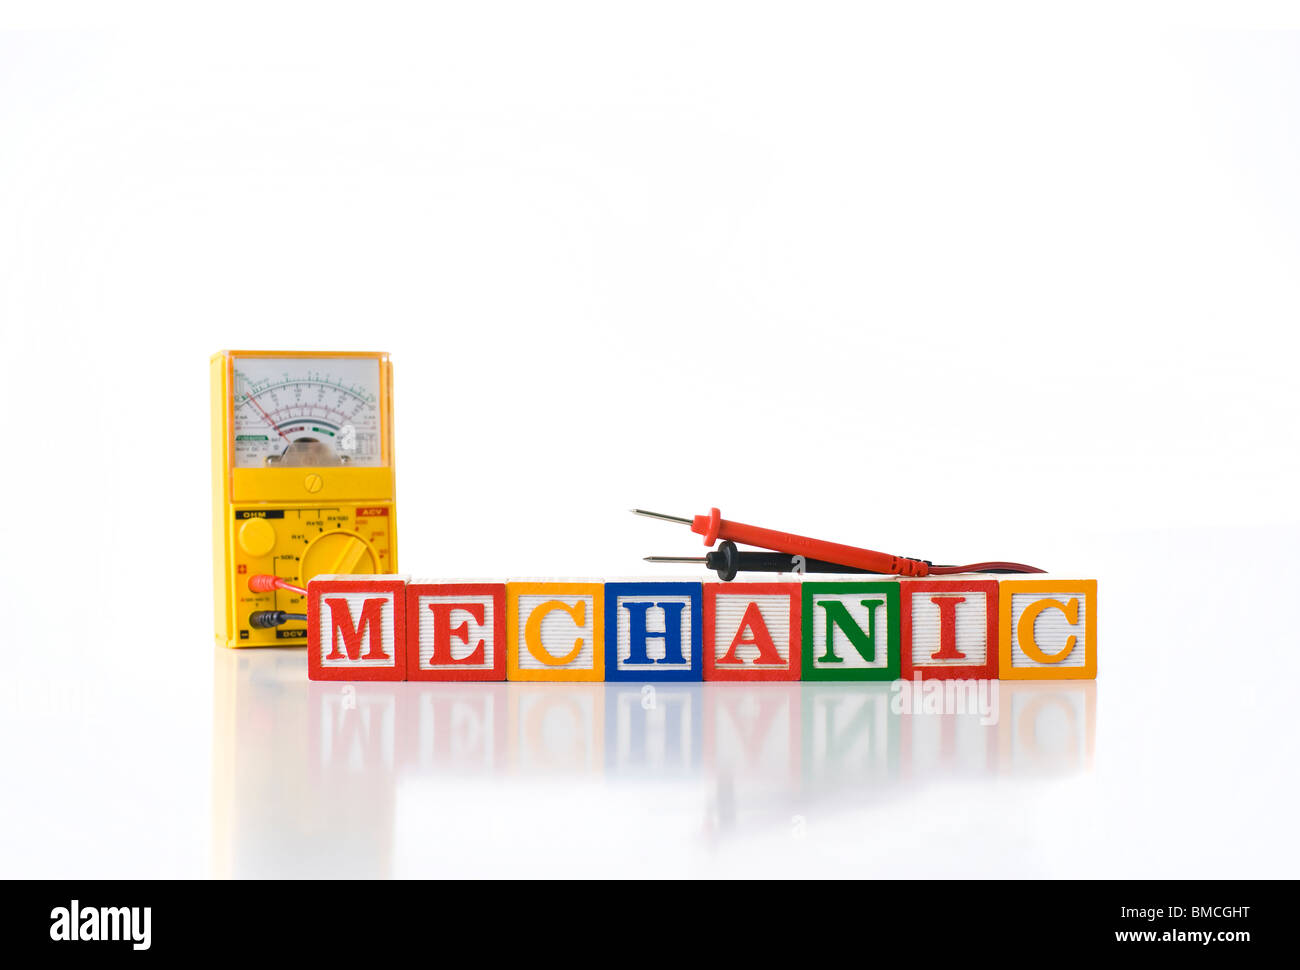 Colorful children's blocks spelling MECHANIC with a test meter - Stock Image